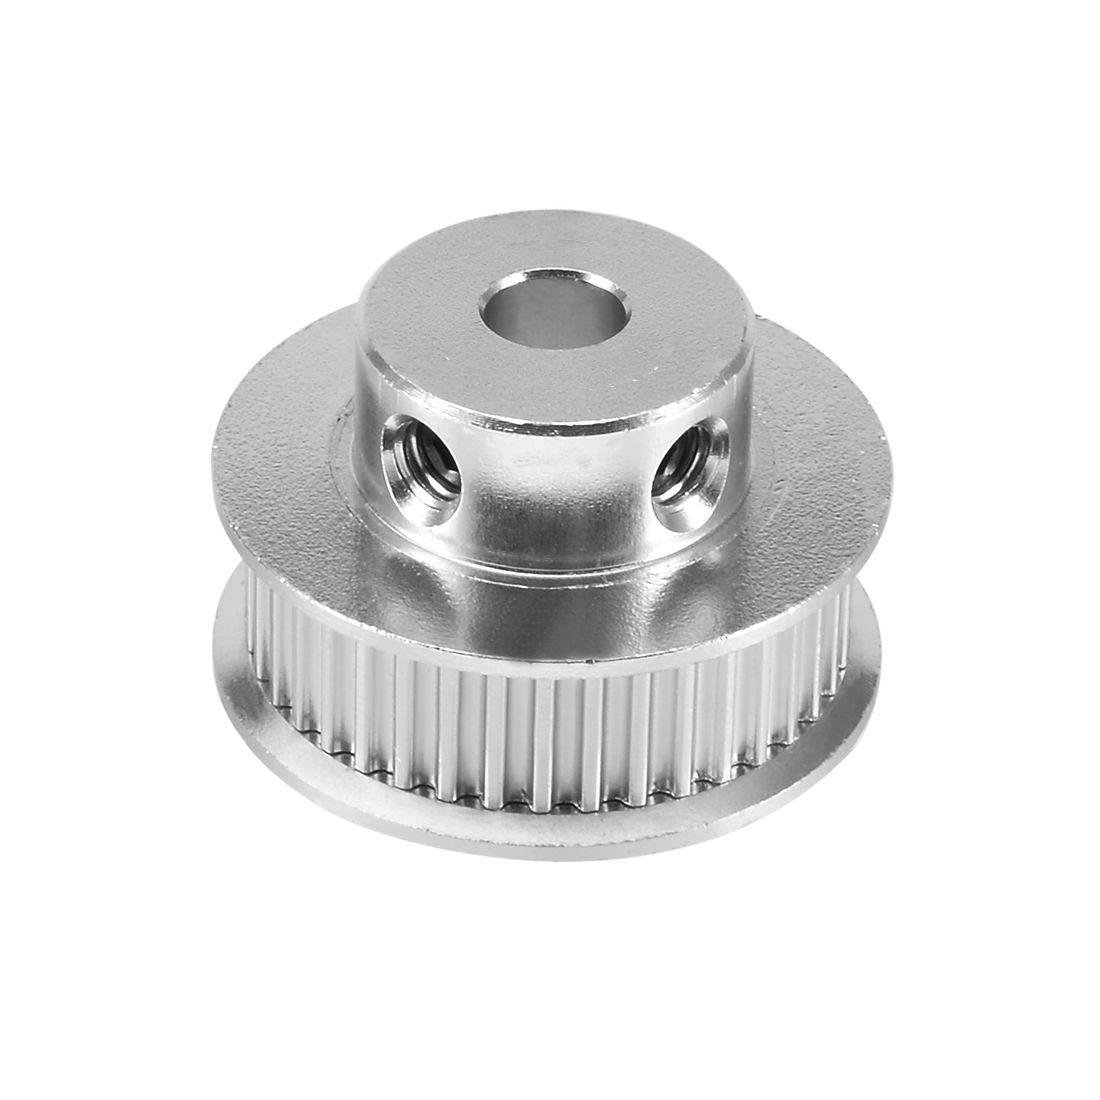 Aluminum GT2 36 Teeth 5mm Bore Timing Belt Pulley Flange Synchronous Wheel for 3D Printer